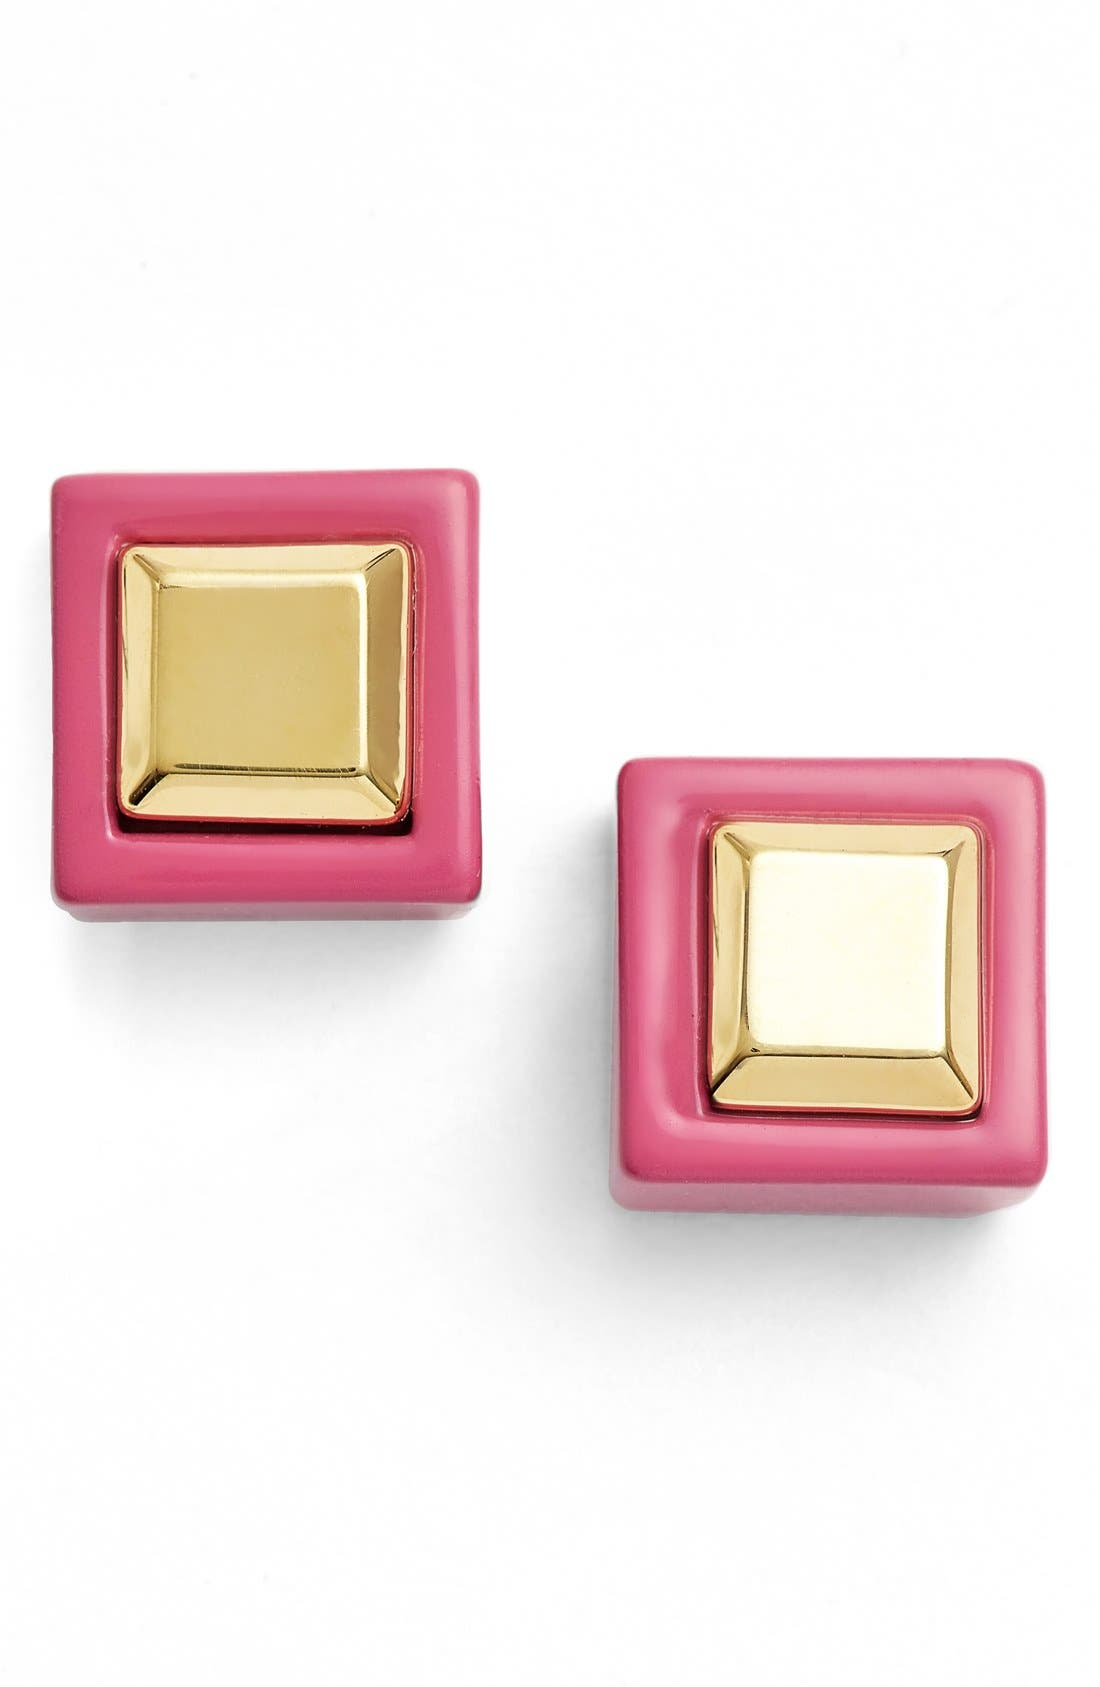 Main Image - MARC BY MARC JACOBS 'Kandi' Square Stud Earrings